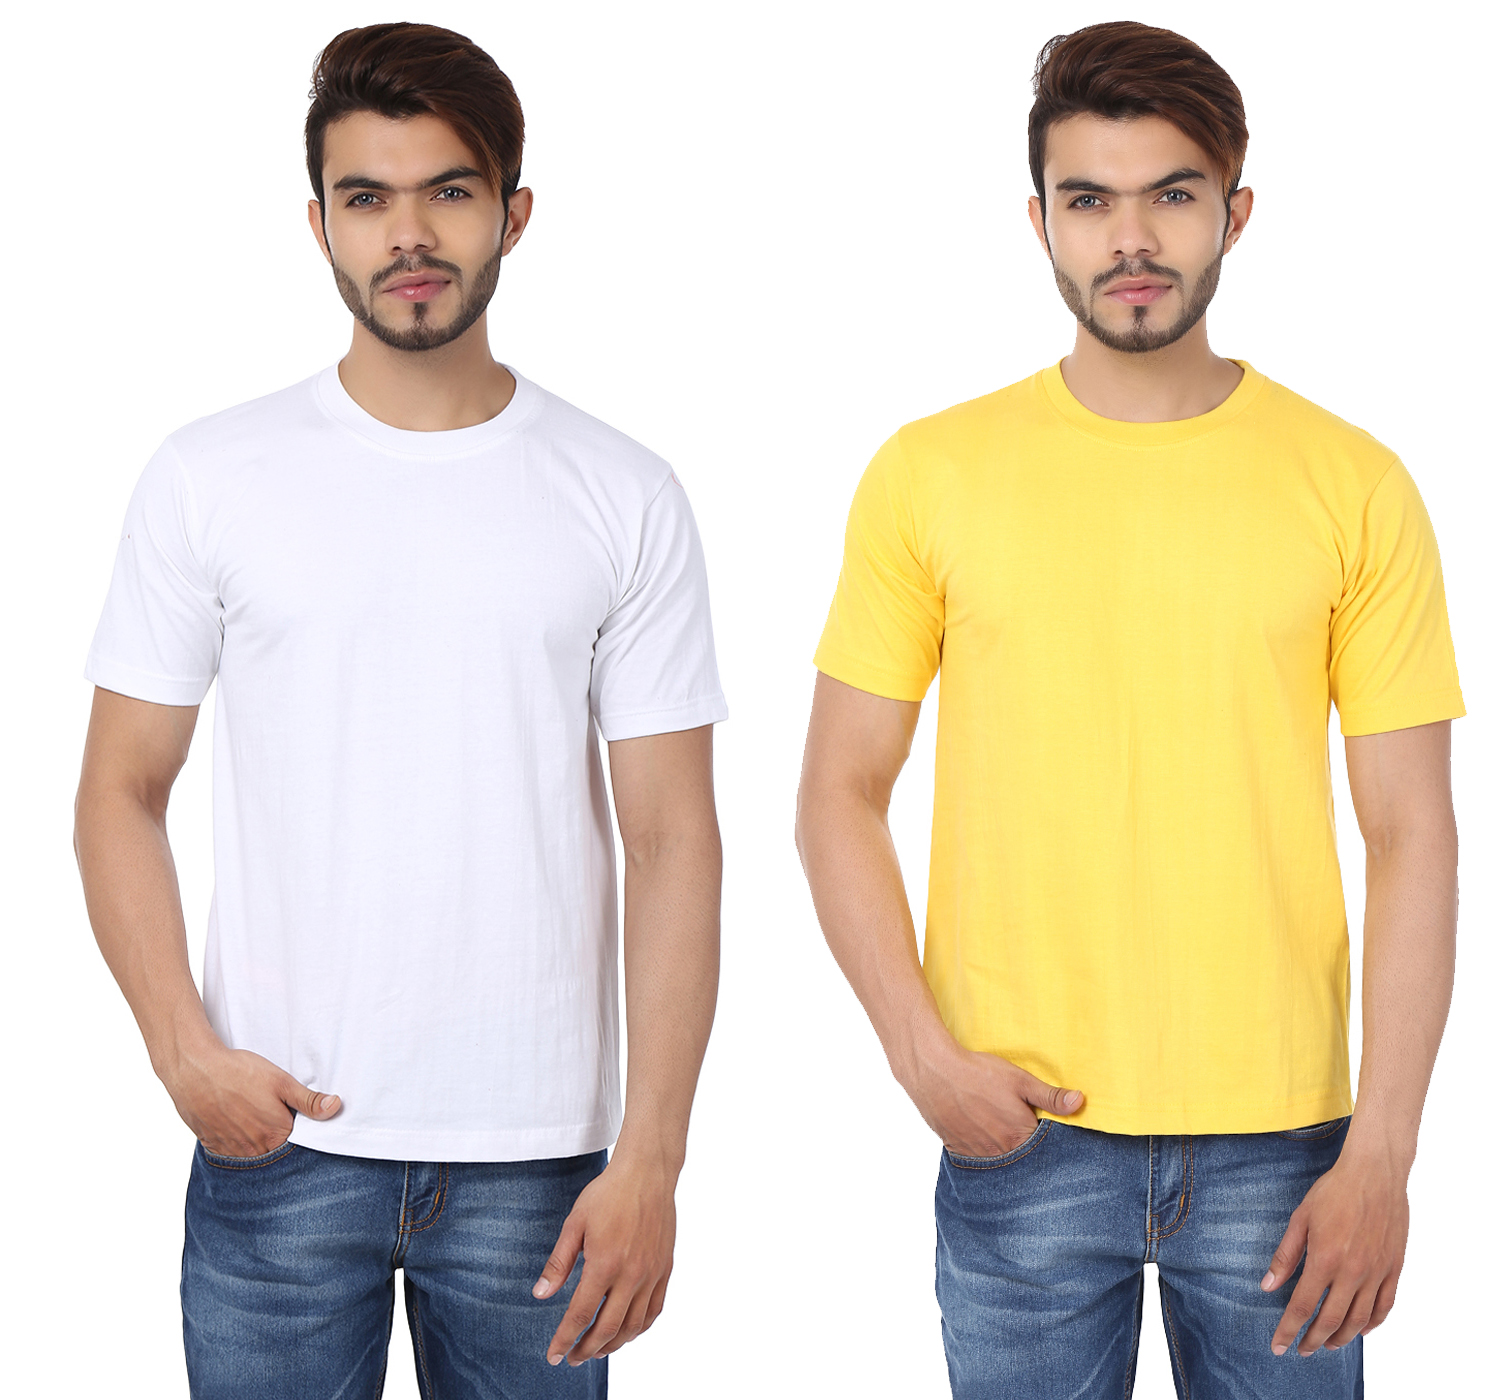 Weardo Combo Of Men's 2 Round Neck T-Shirts In White & Yellow Color